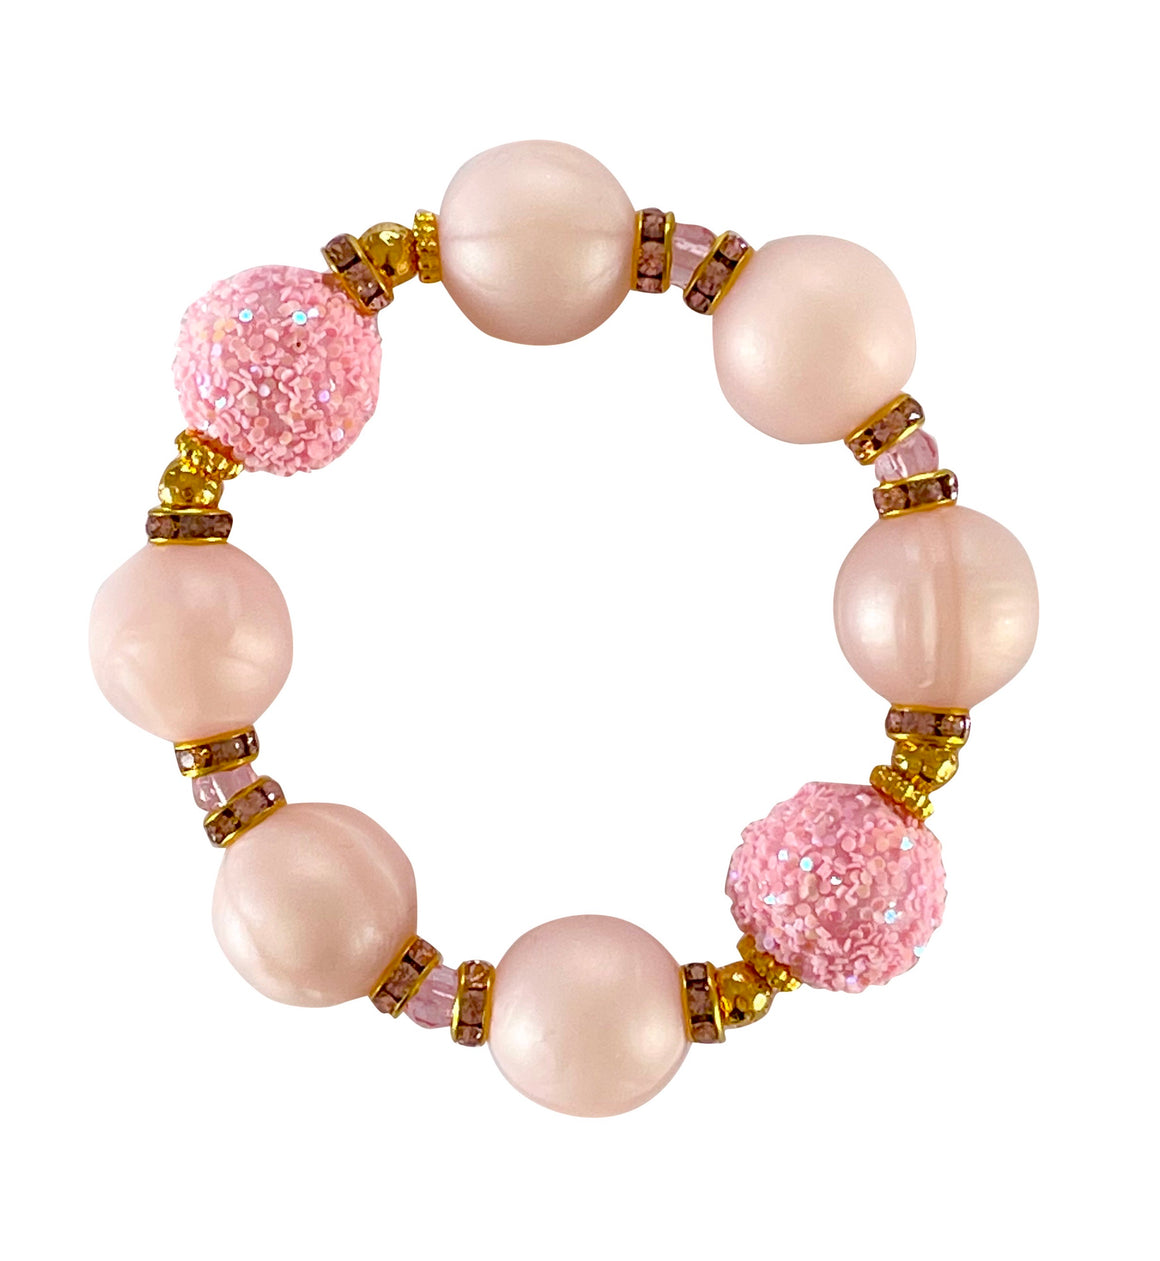 SPRING STATEMENT BRACELET IN LIGHT PINK